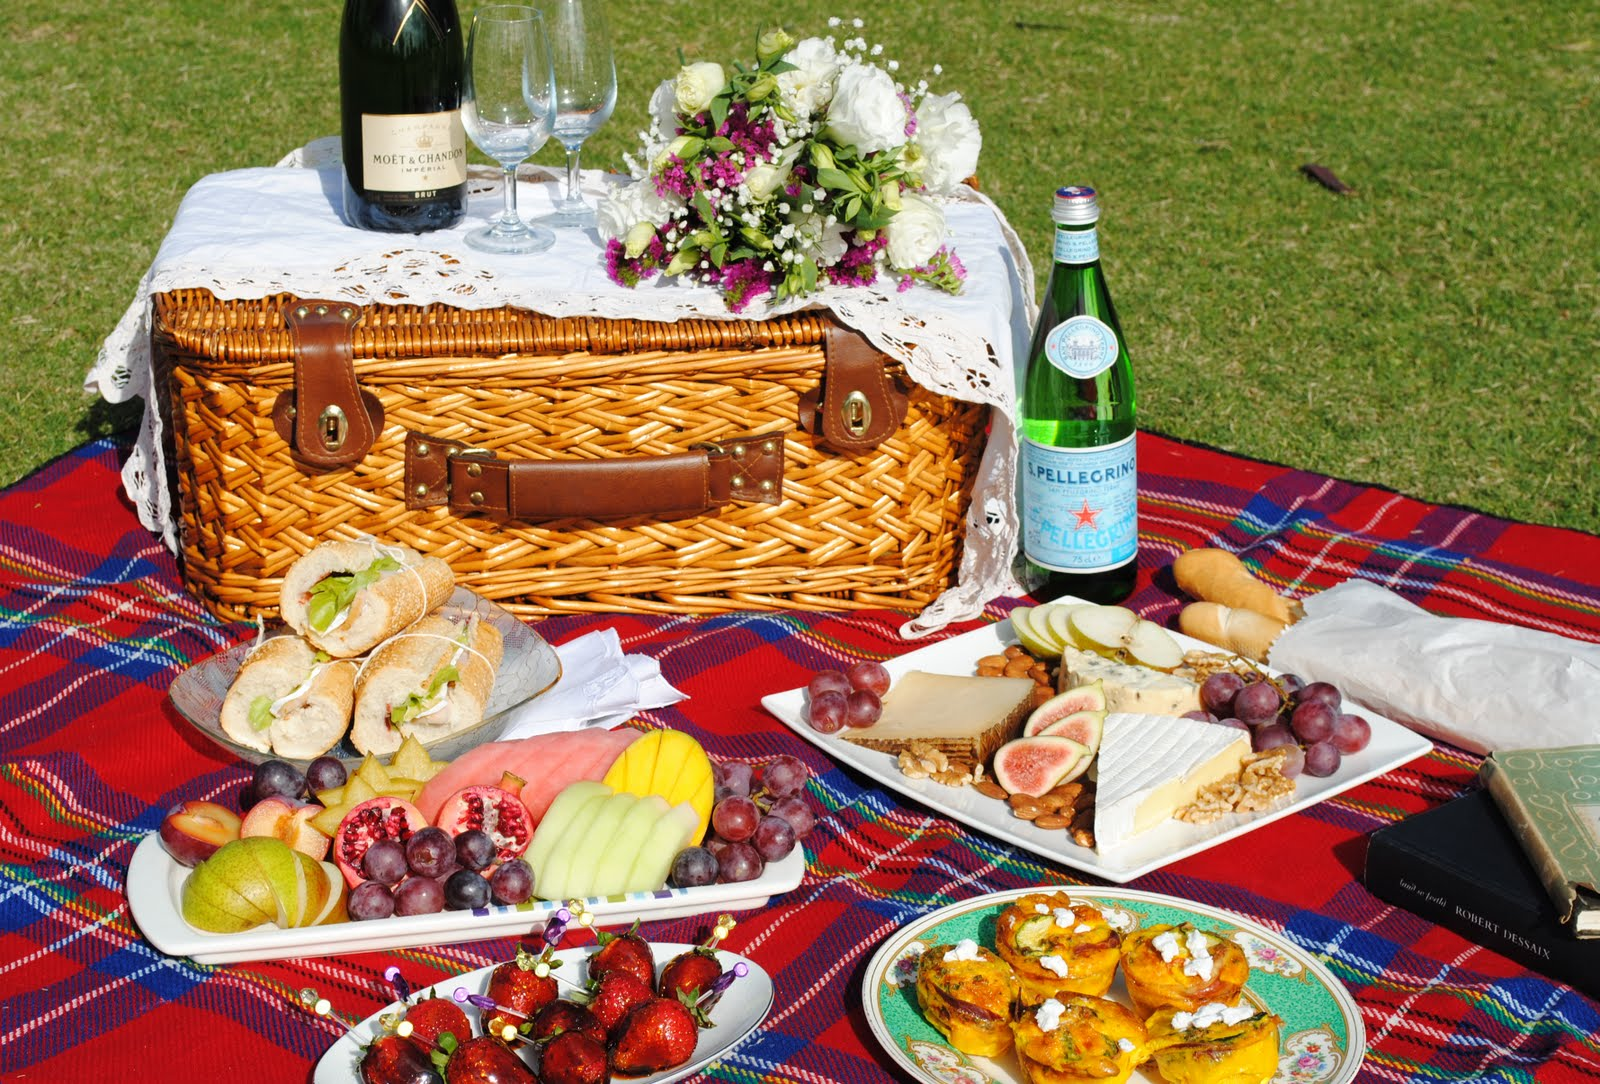 Romantic Picnic Ideas For Two Romantic Picnic By The Water If you are fortunate enough to live by a lake, take this opportunity to spend time alone together, listening to the relaxing waves hit the shore line.